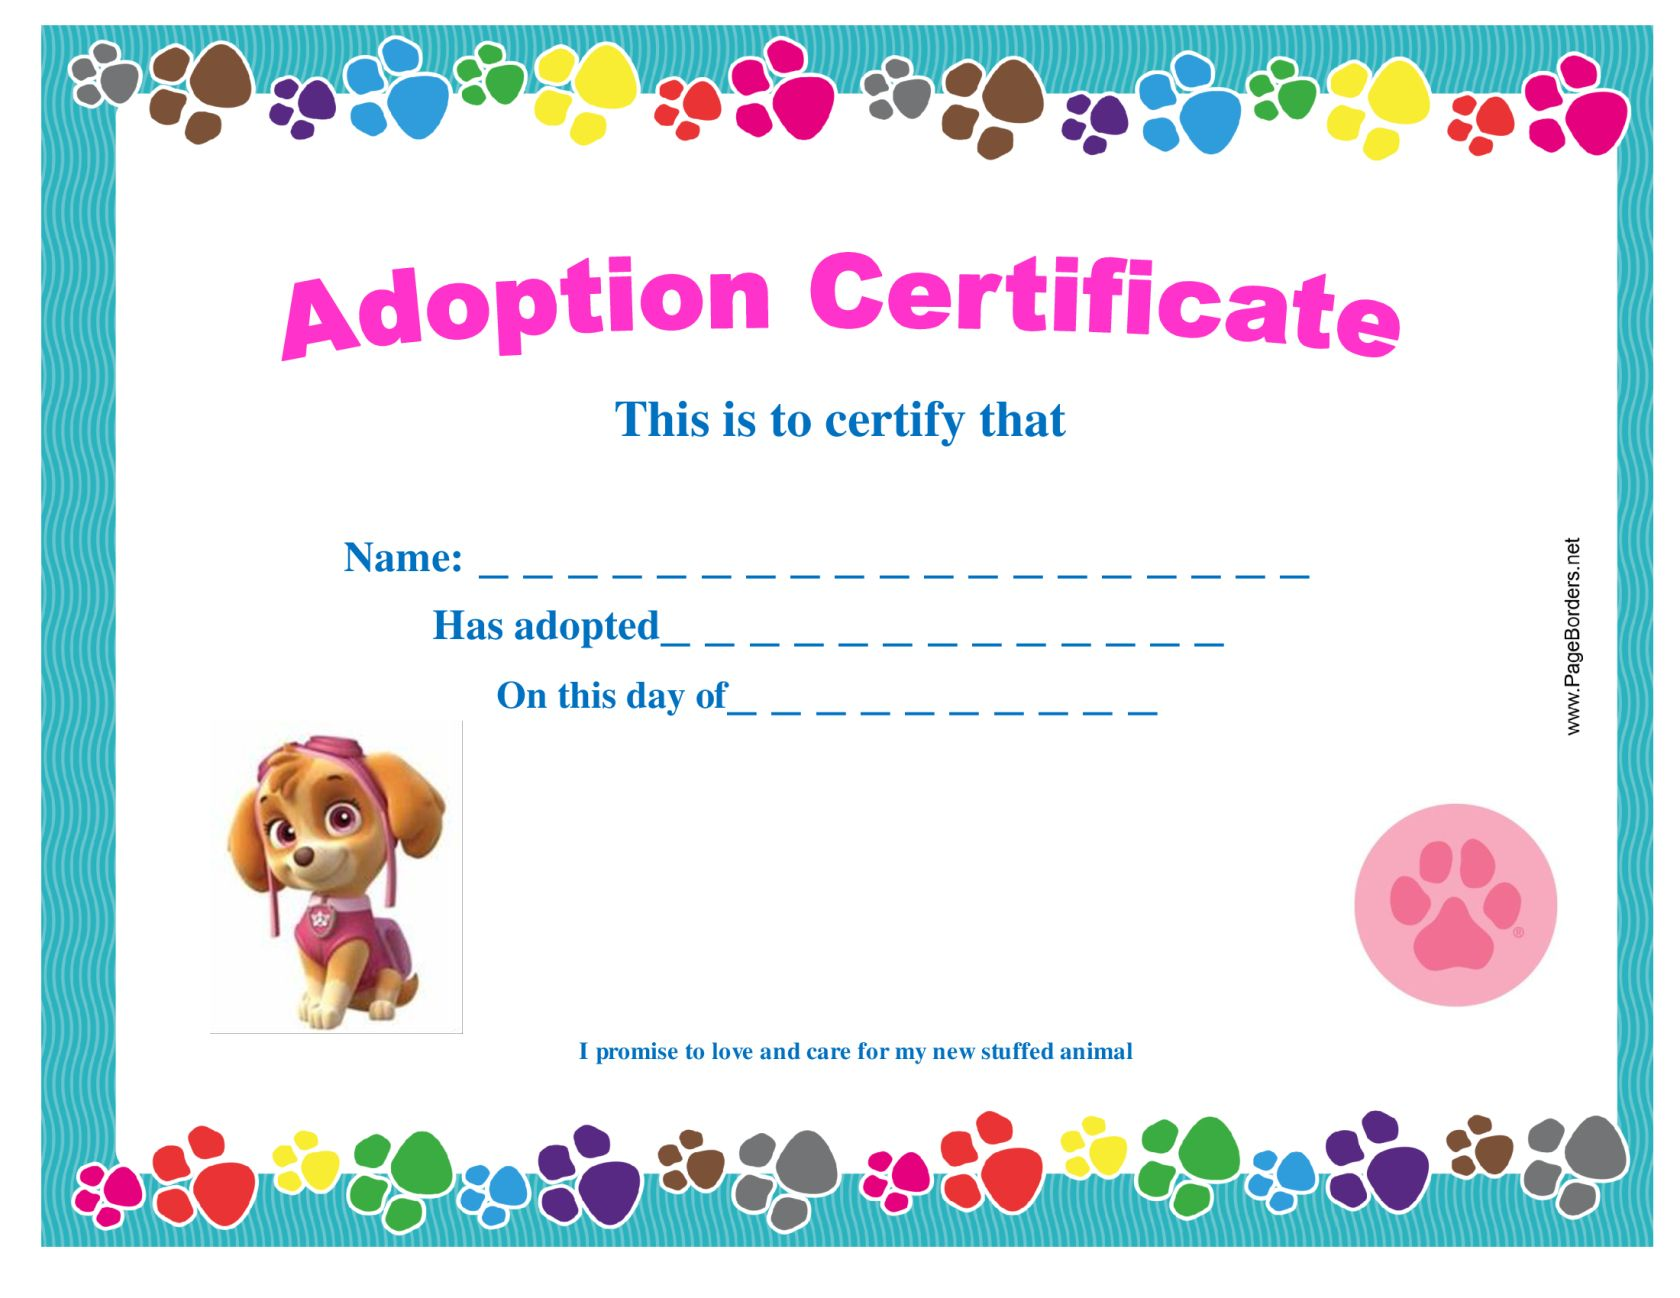 Paw patrol adopt a pup party convites adoption certificate for adopt a pup paw patrol party on a budget ideas and xflitez Gallery